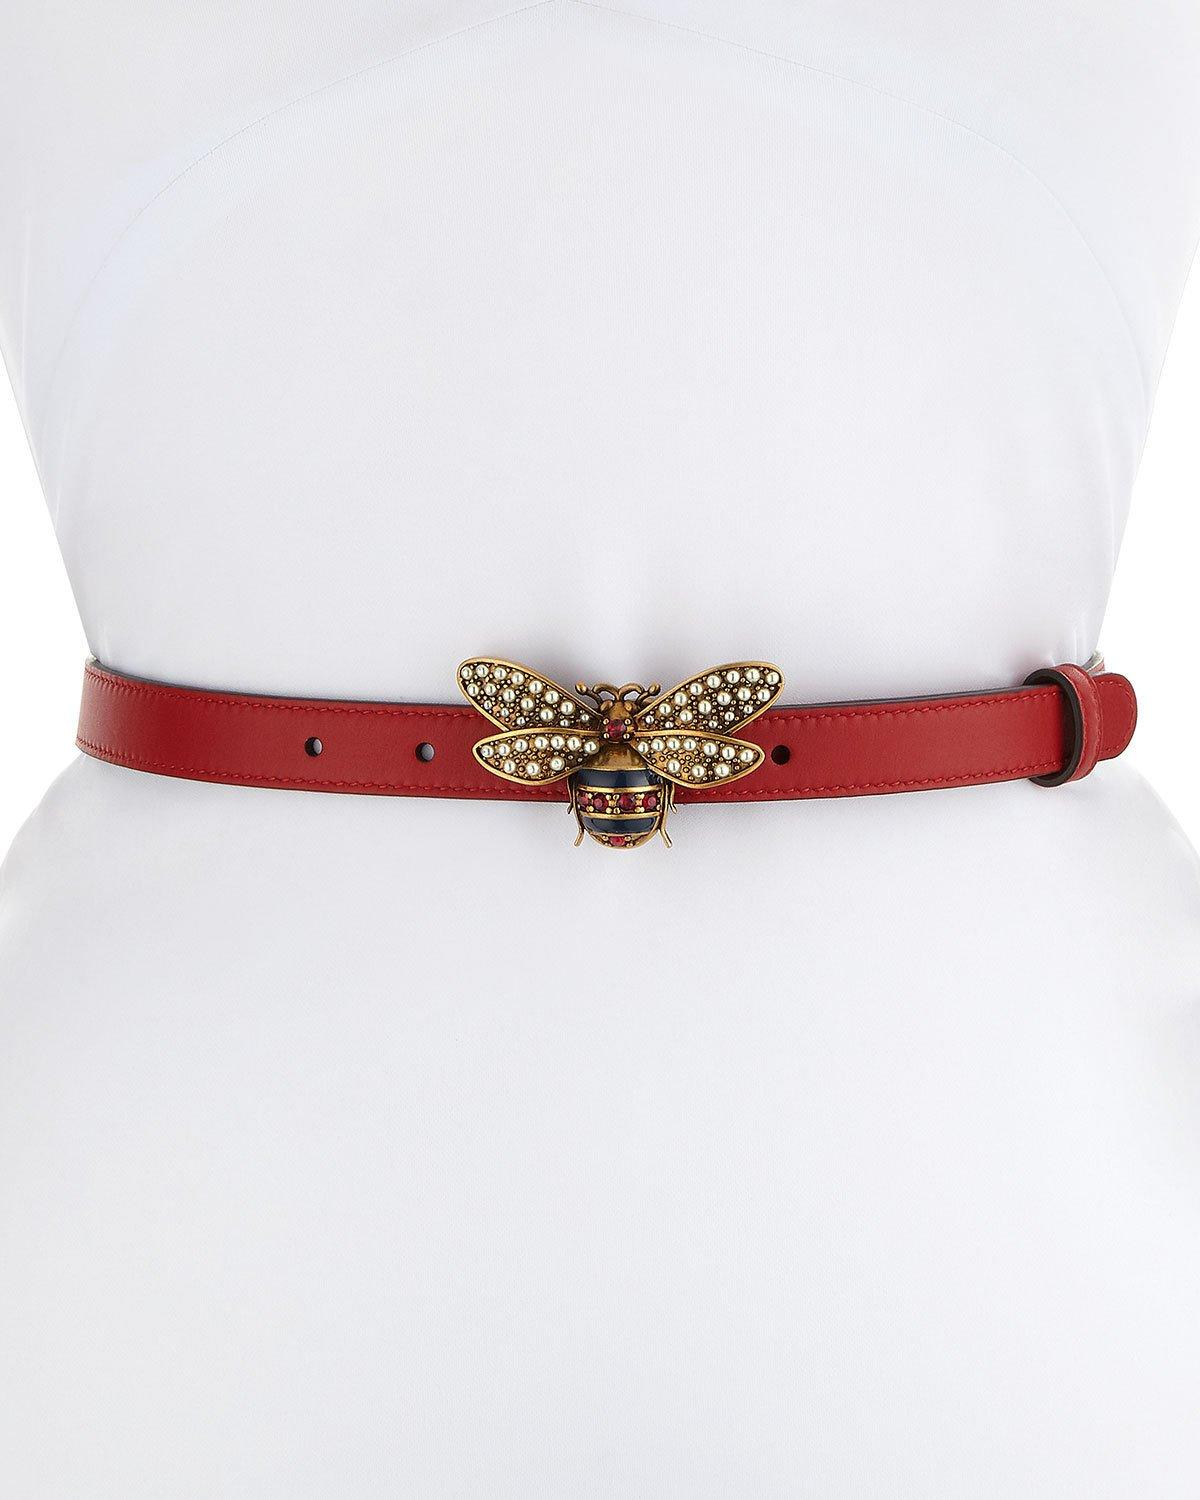 398ed0023 Gucci Queen Margaret Leather Belt W/ Embellished Bee Buckle In Black/White